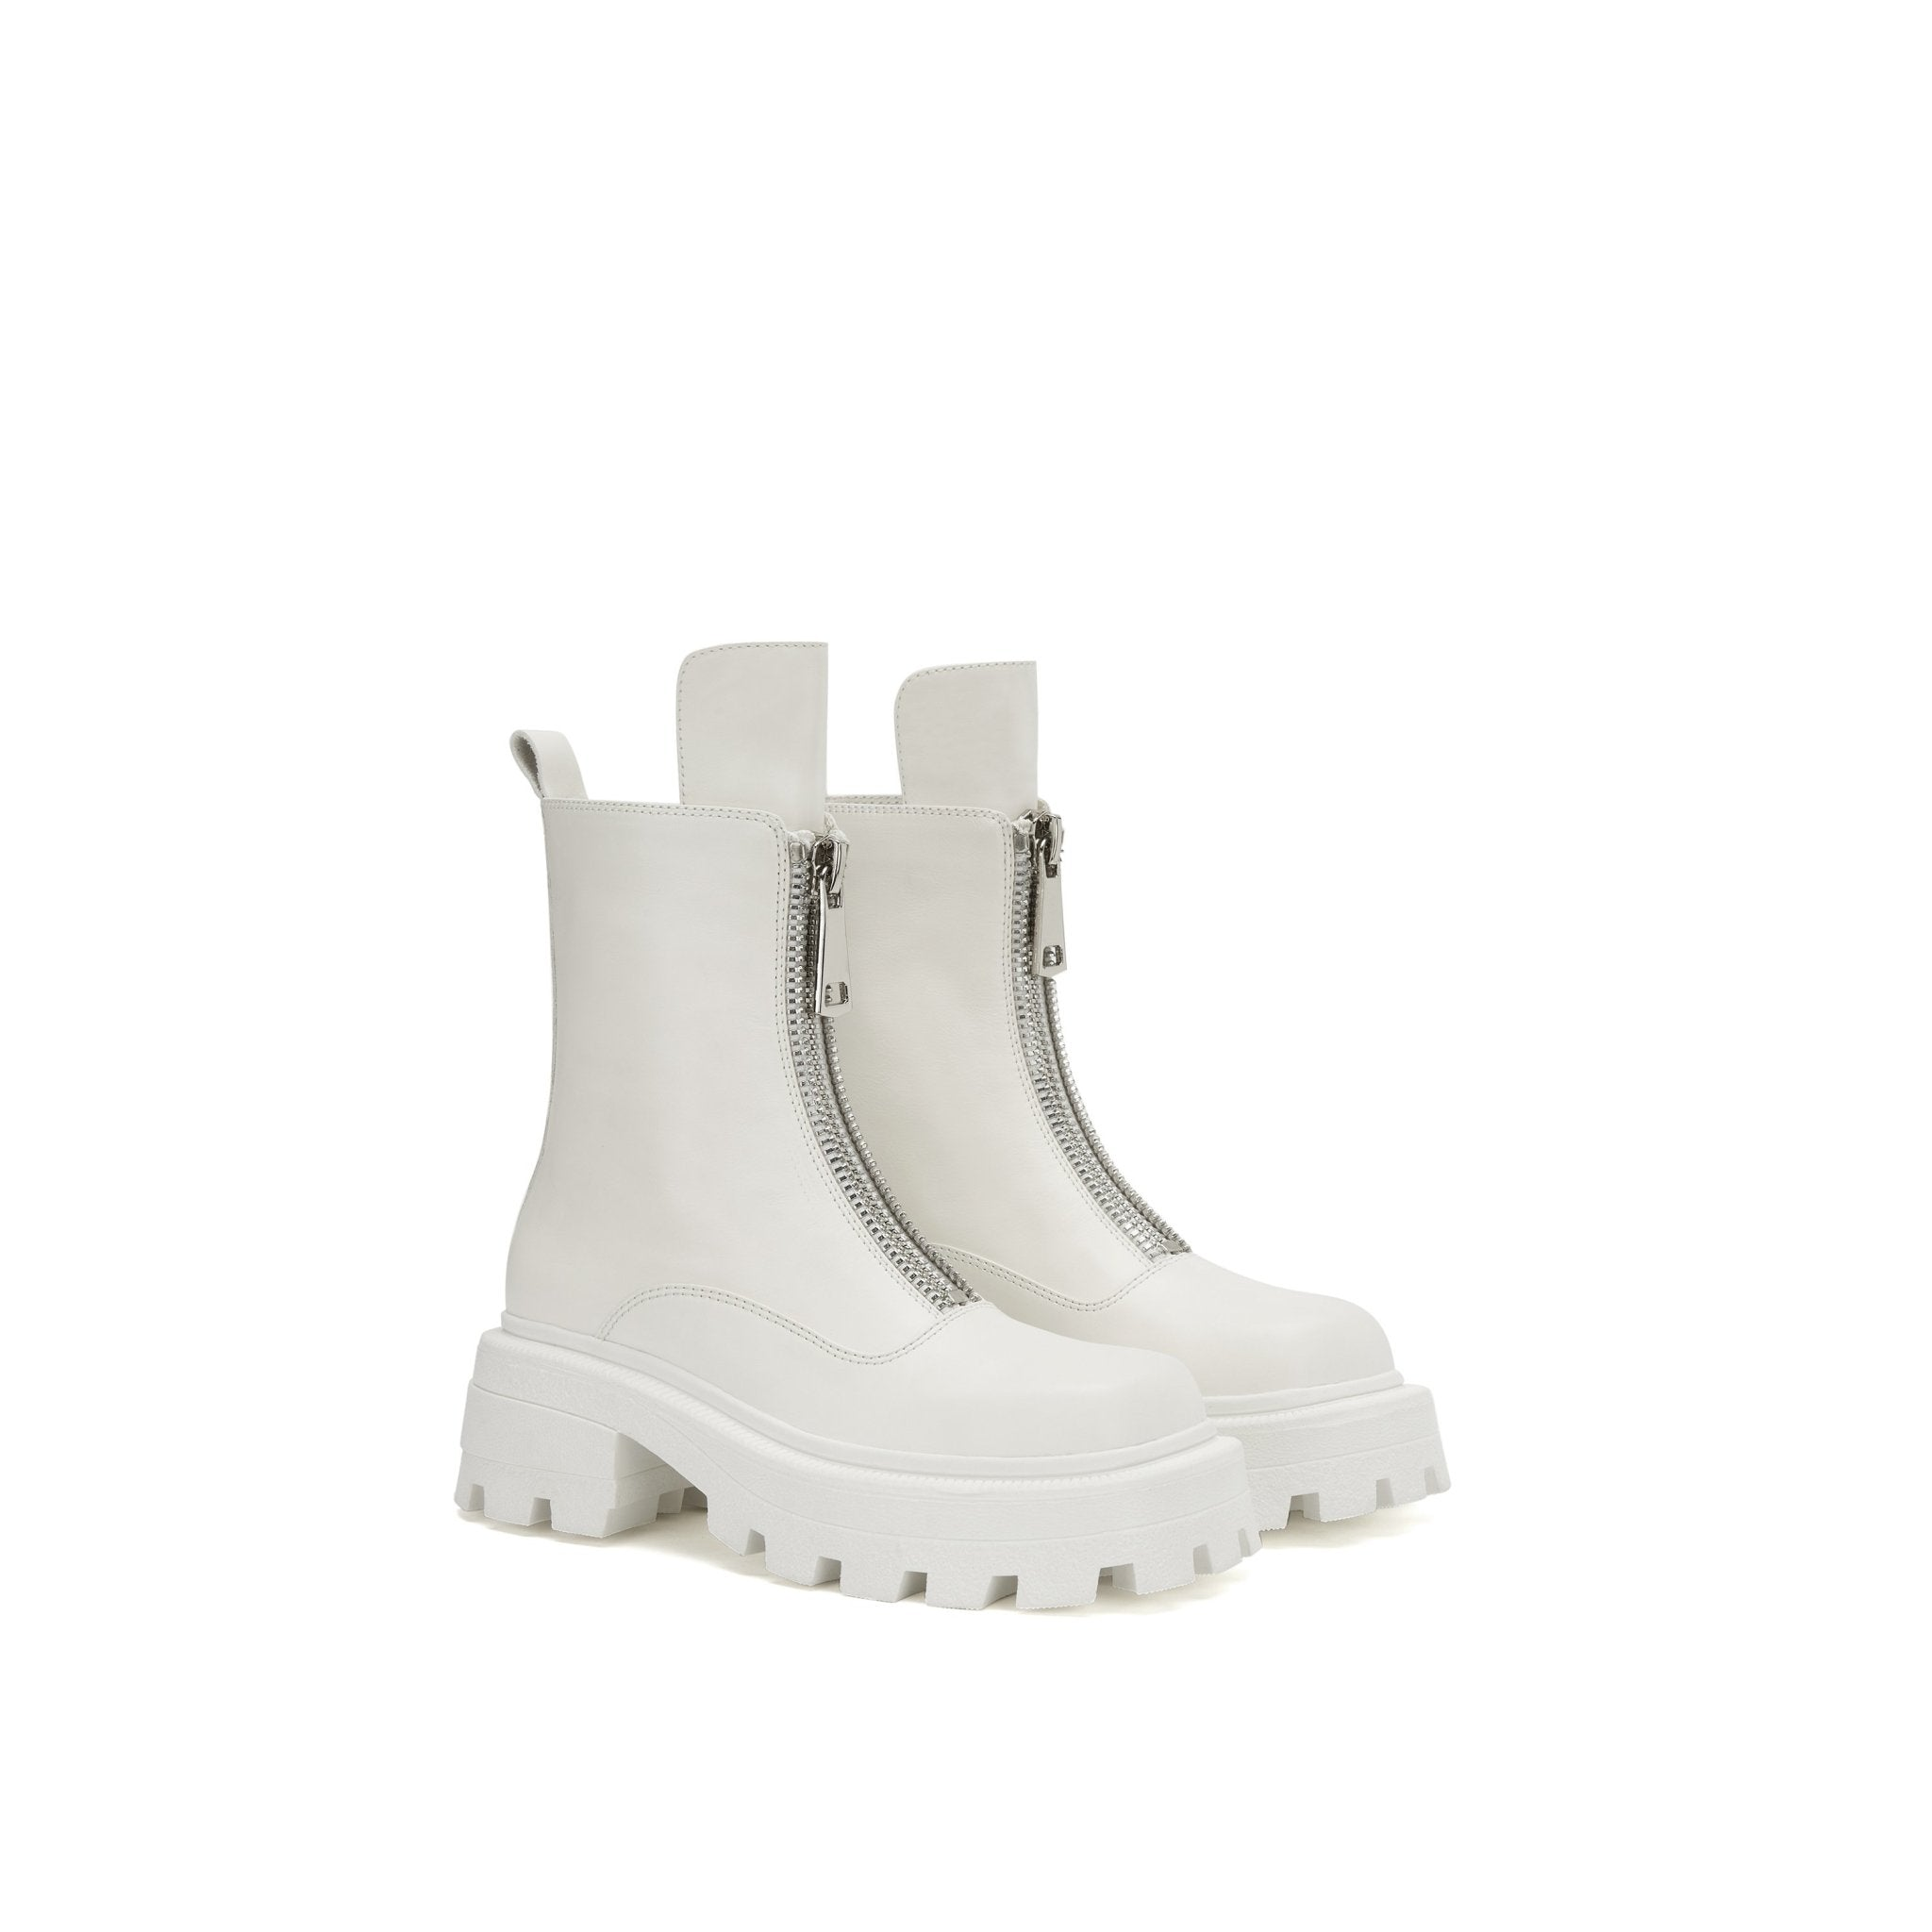 LOST IN ECHO White Square Toe Zip Boots | MADA IN CHINA